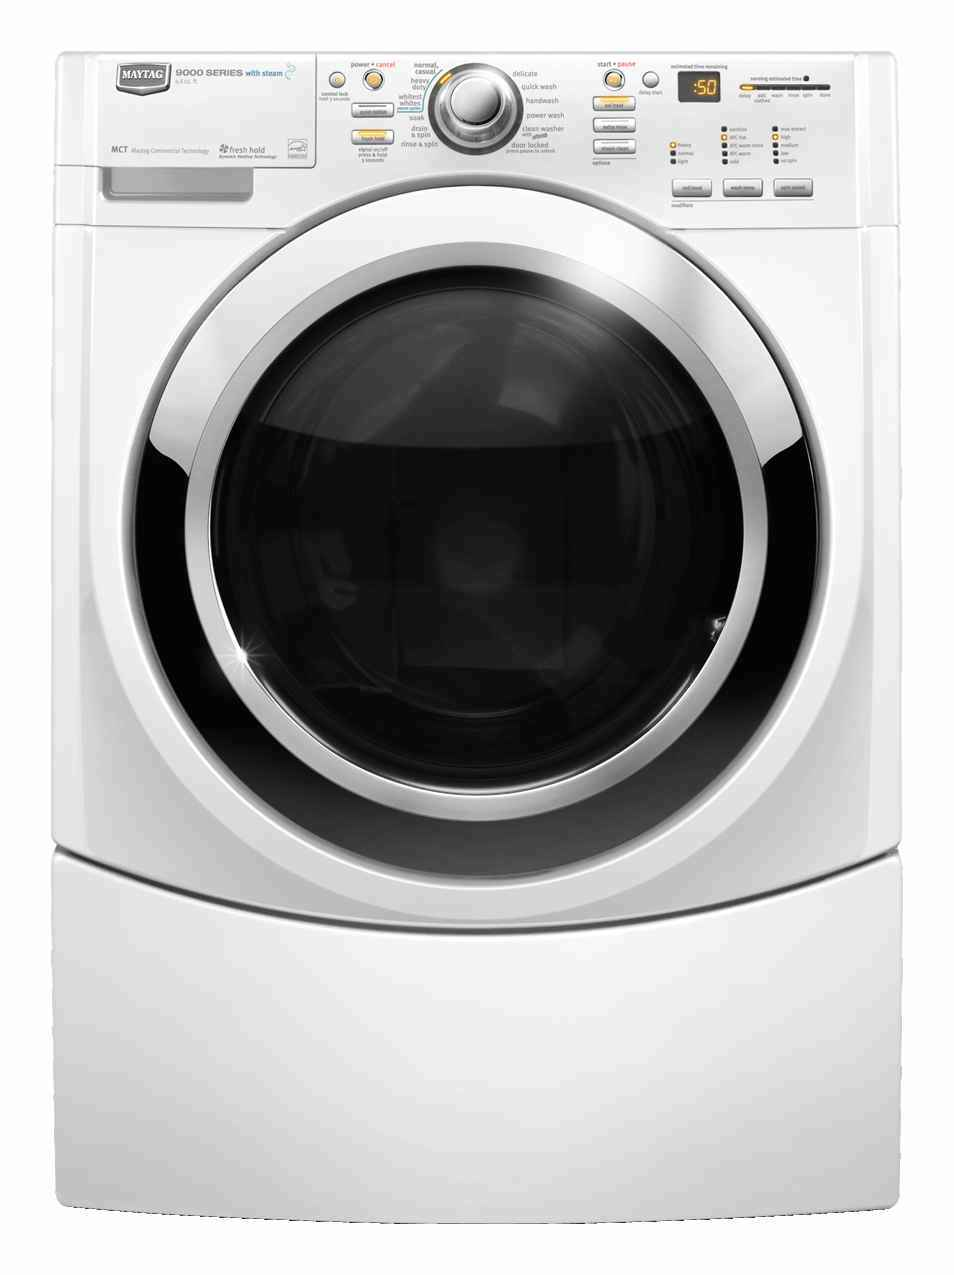 Maytag MHWE950WW Washer